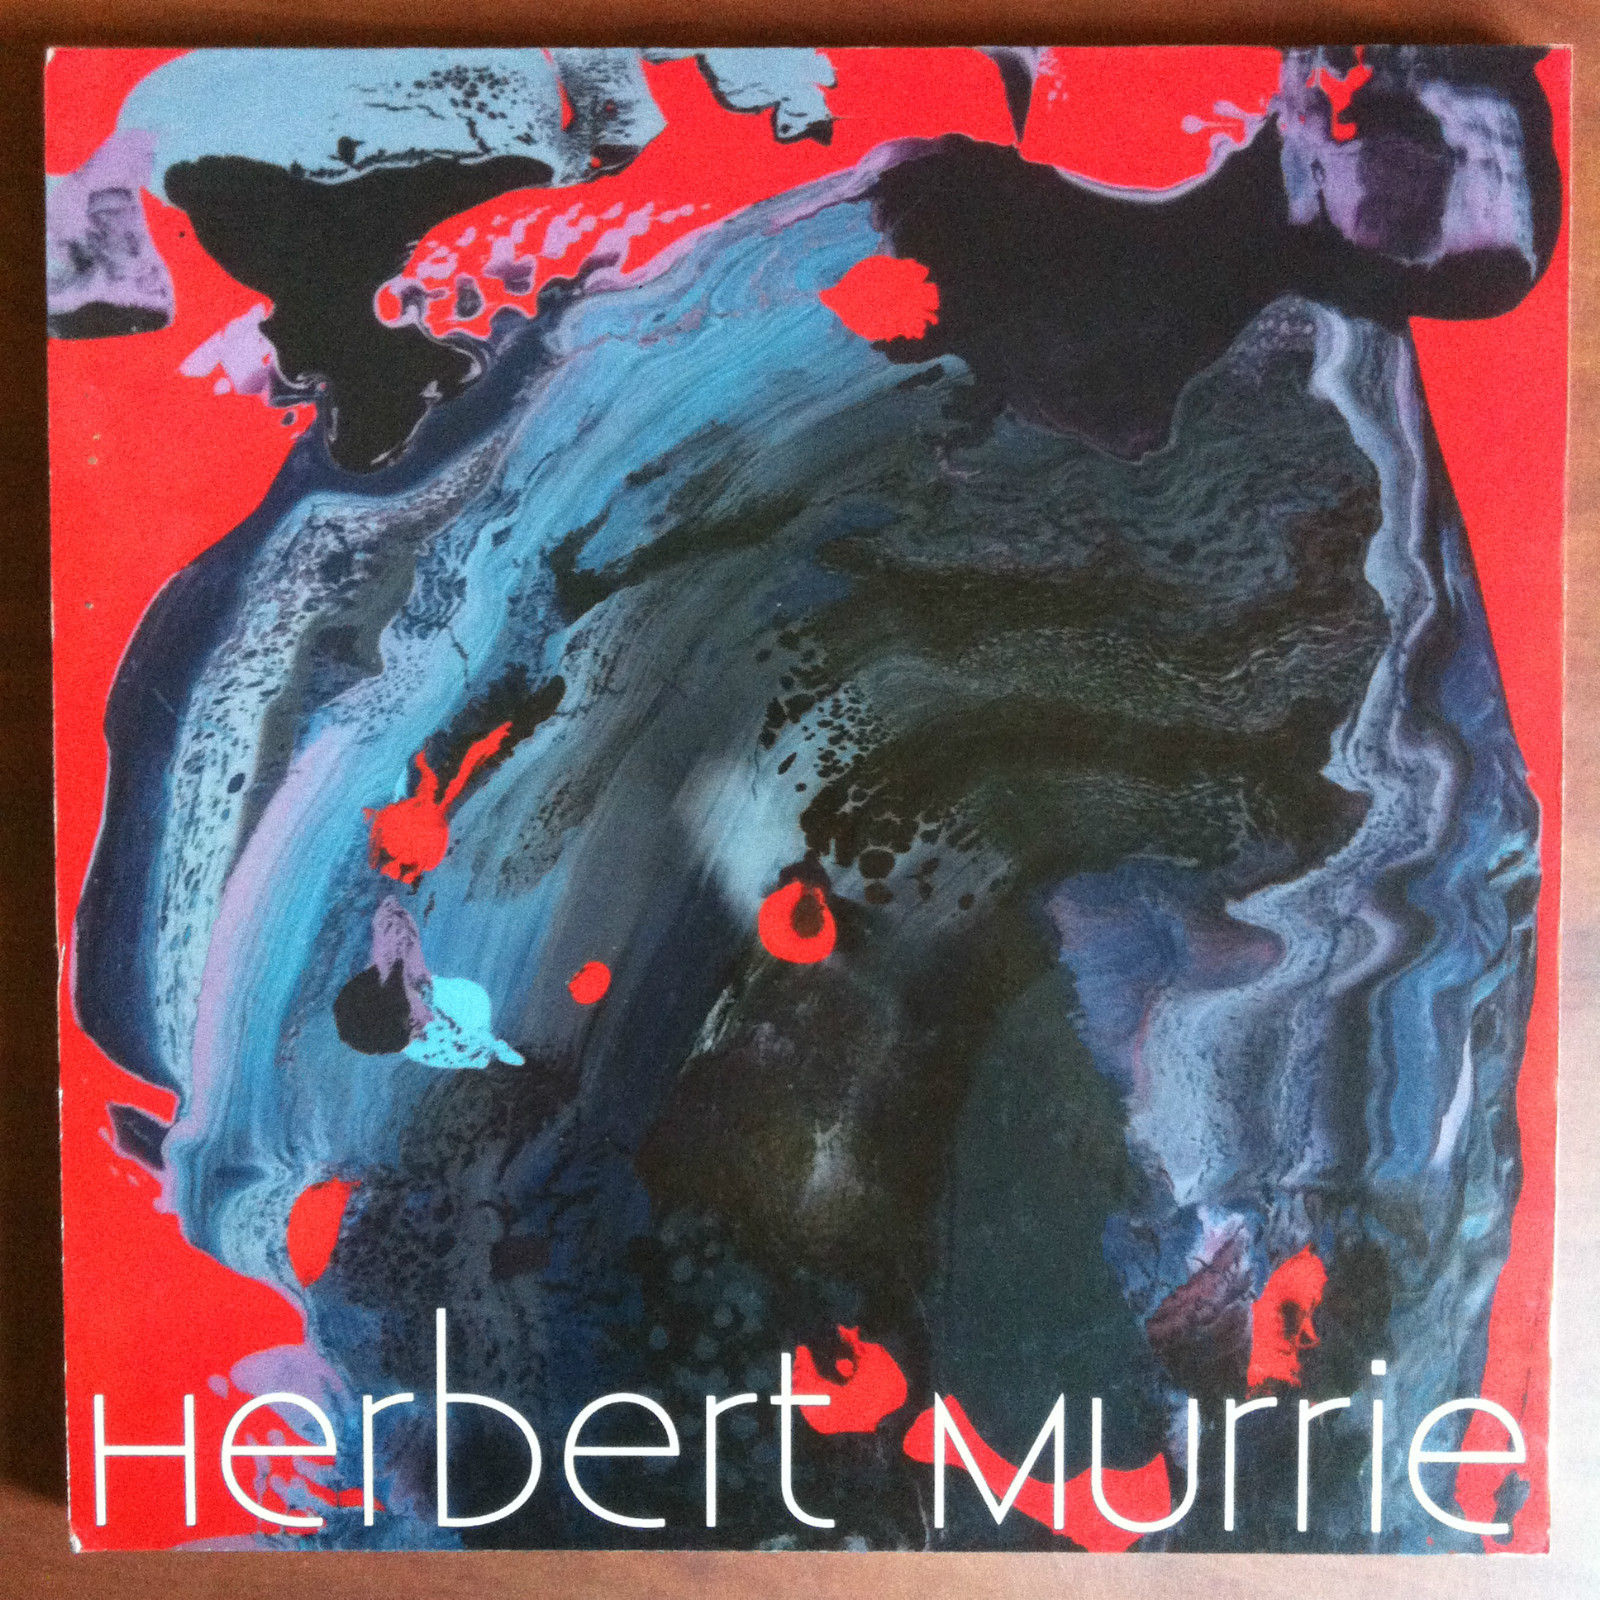 Herbert Murrie - Catalogue